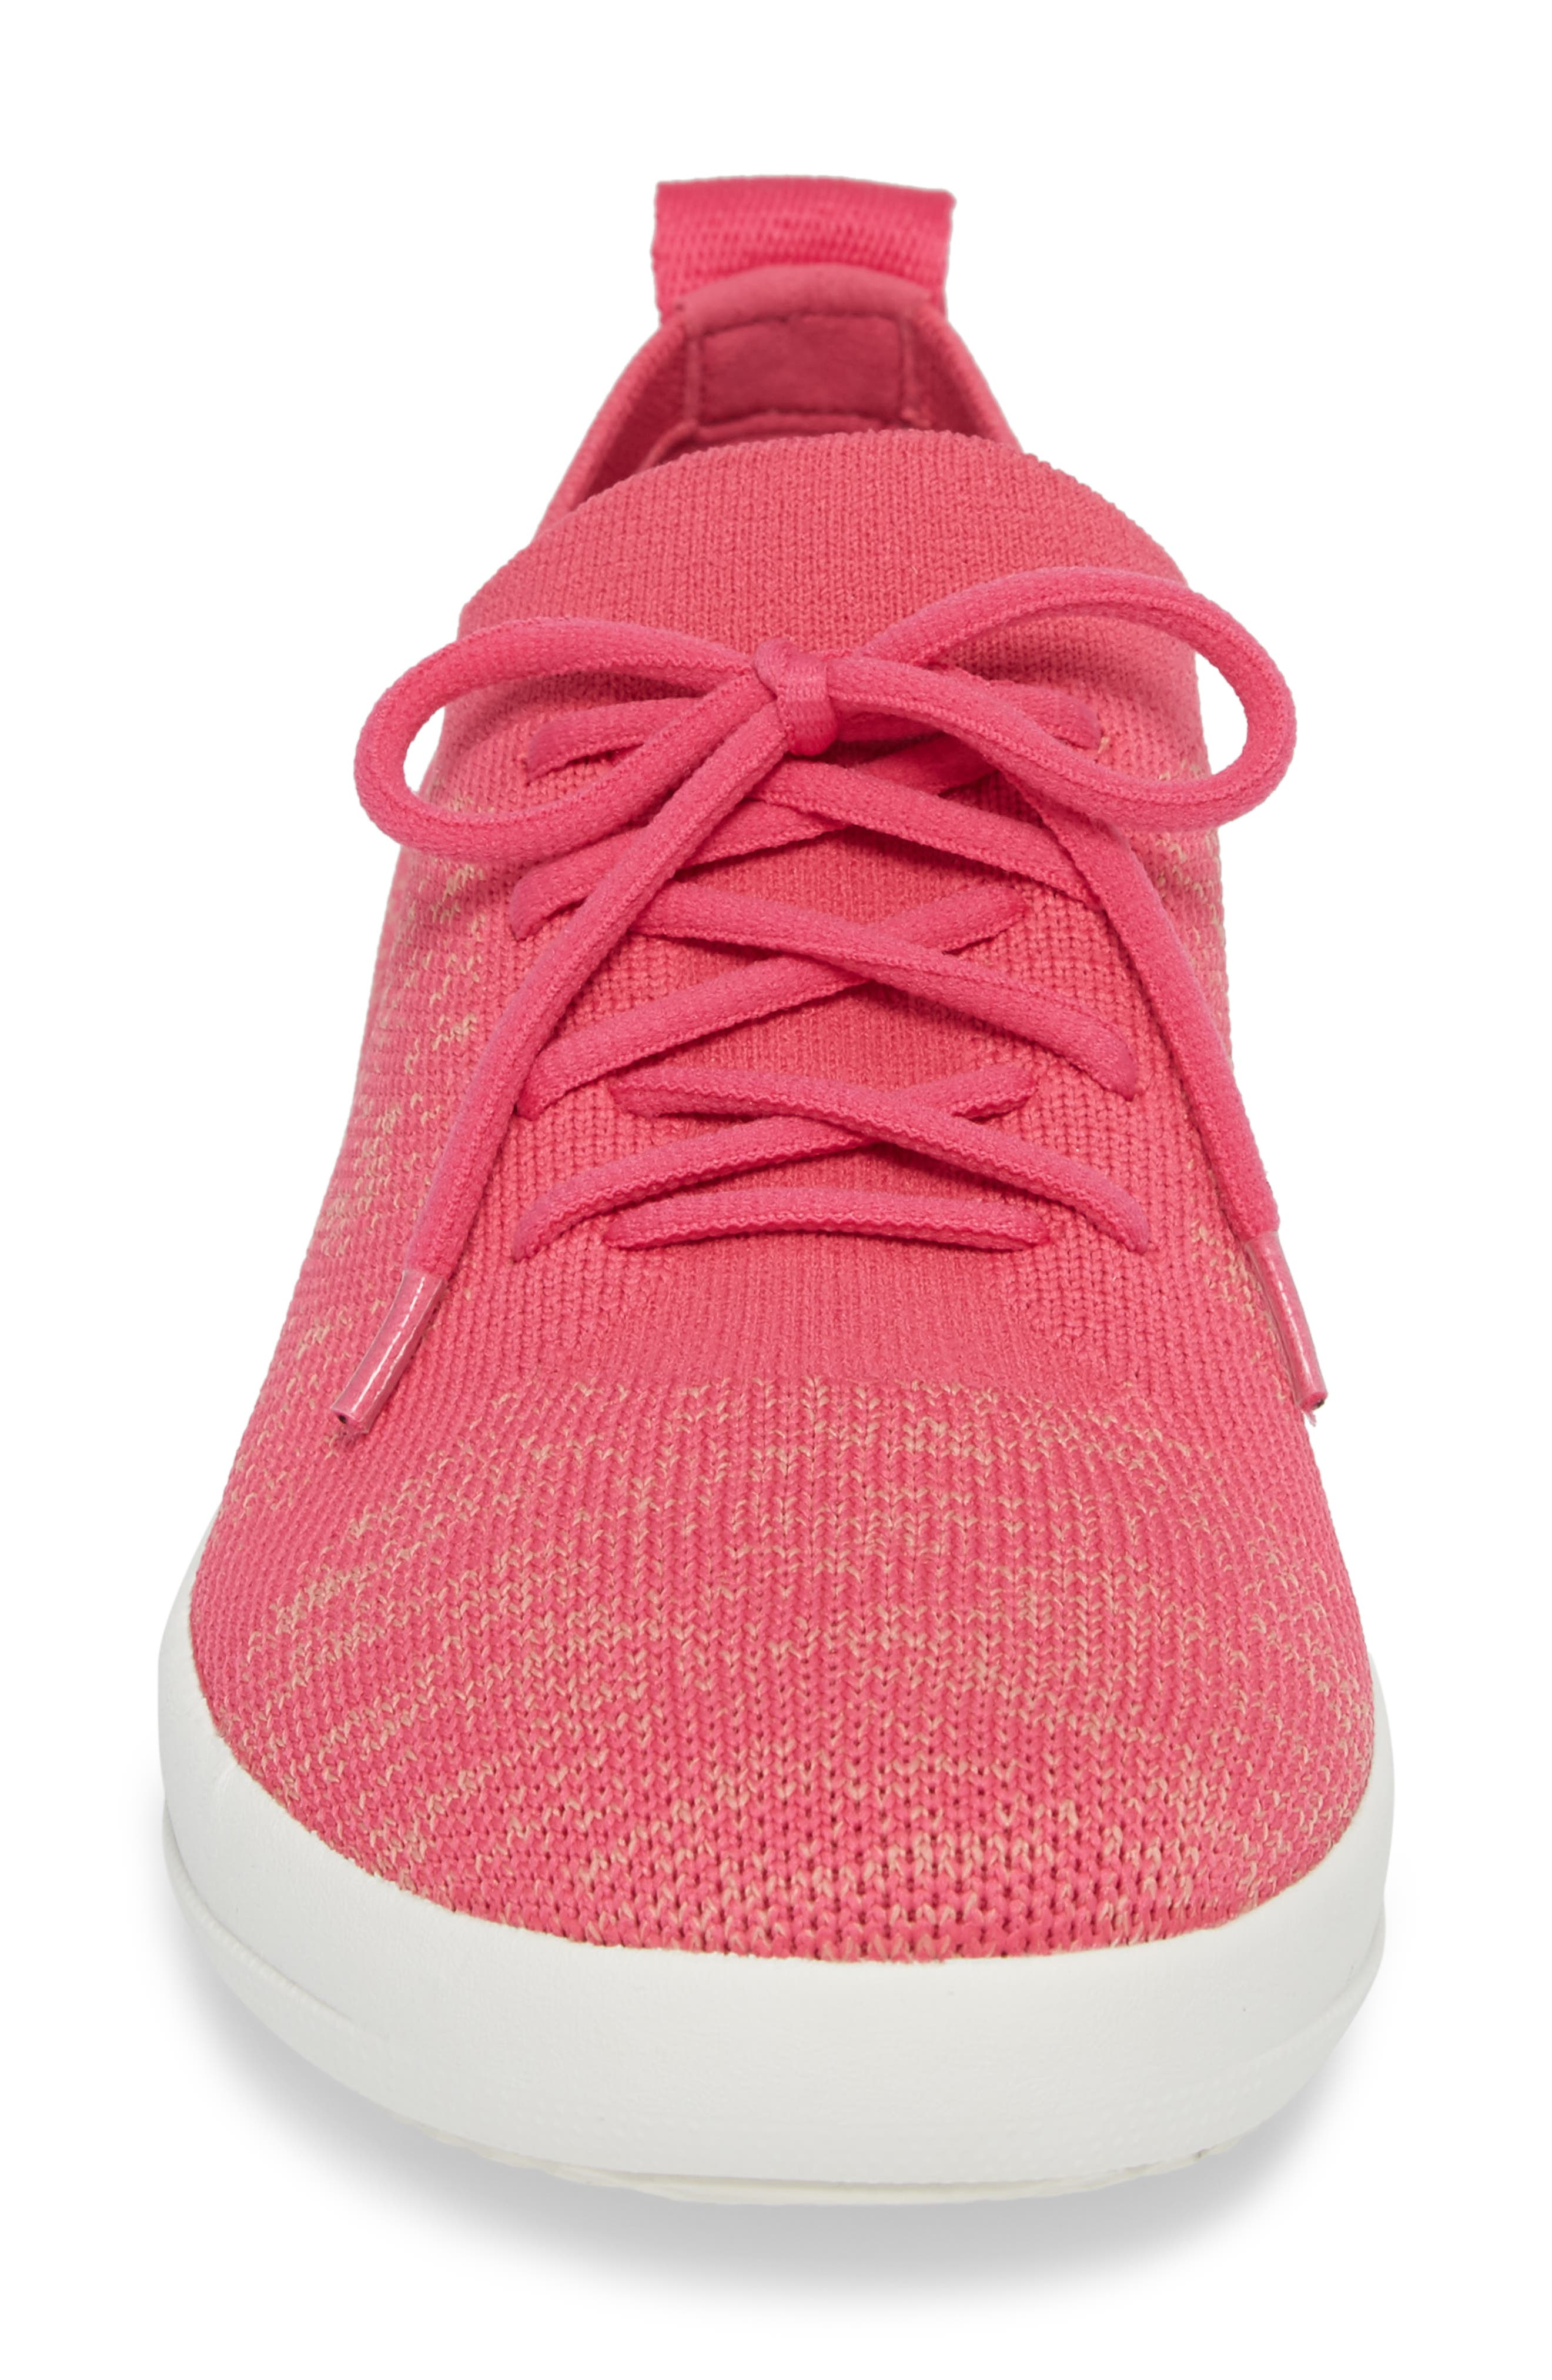 F-Sporty Uberknit<sup>™</sup> Sneaker,                             Alternate thumbnail 4, color,                             FUCHSIA/ DUSTY PINK